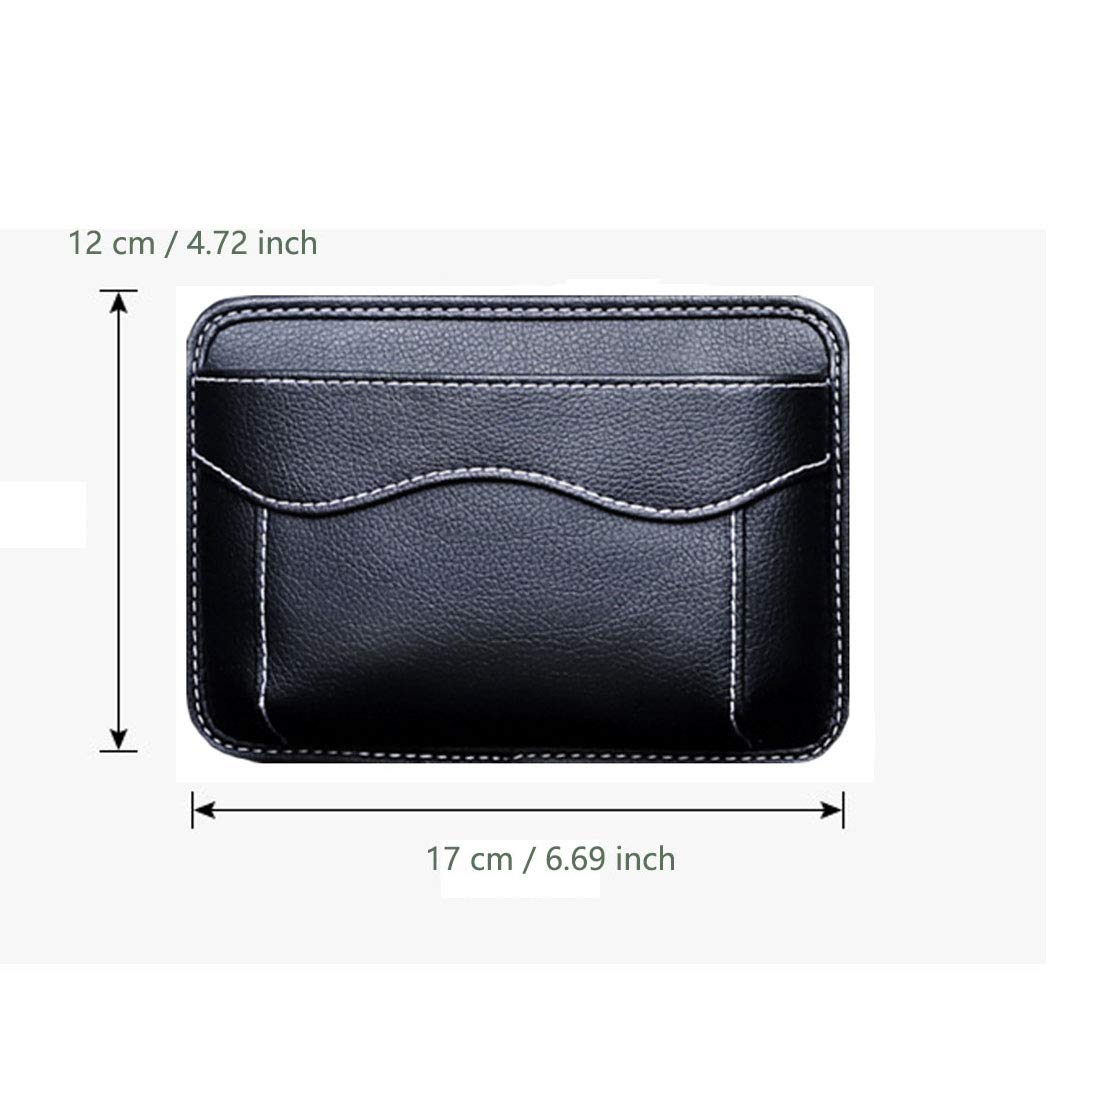 Notepad Car Side Pocket Organizer Console Window Registration Seat -Fits to Organize Document Black Gadgets Auto Seat Pockets PU Leather Pen Phone Holder Tray Pouch Used for Car Door Pen